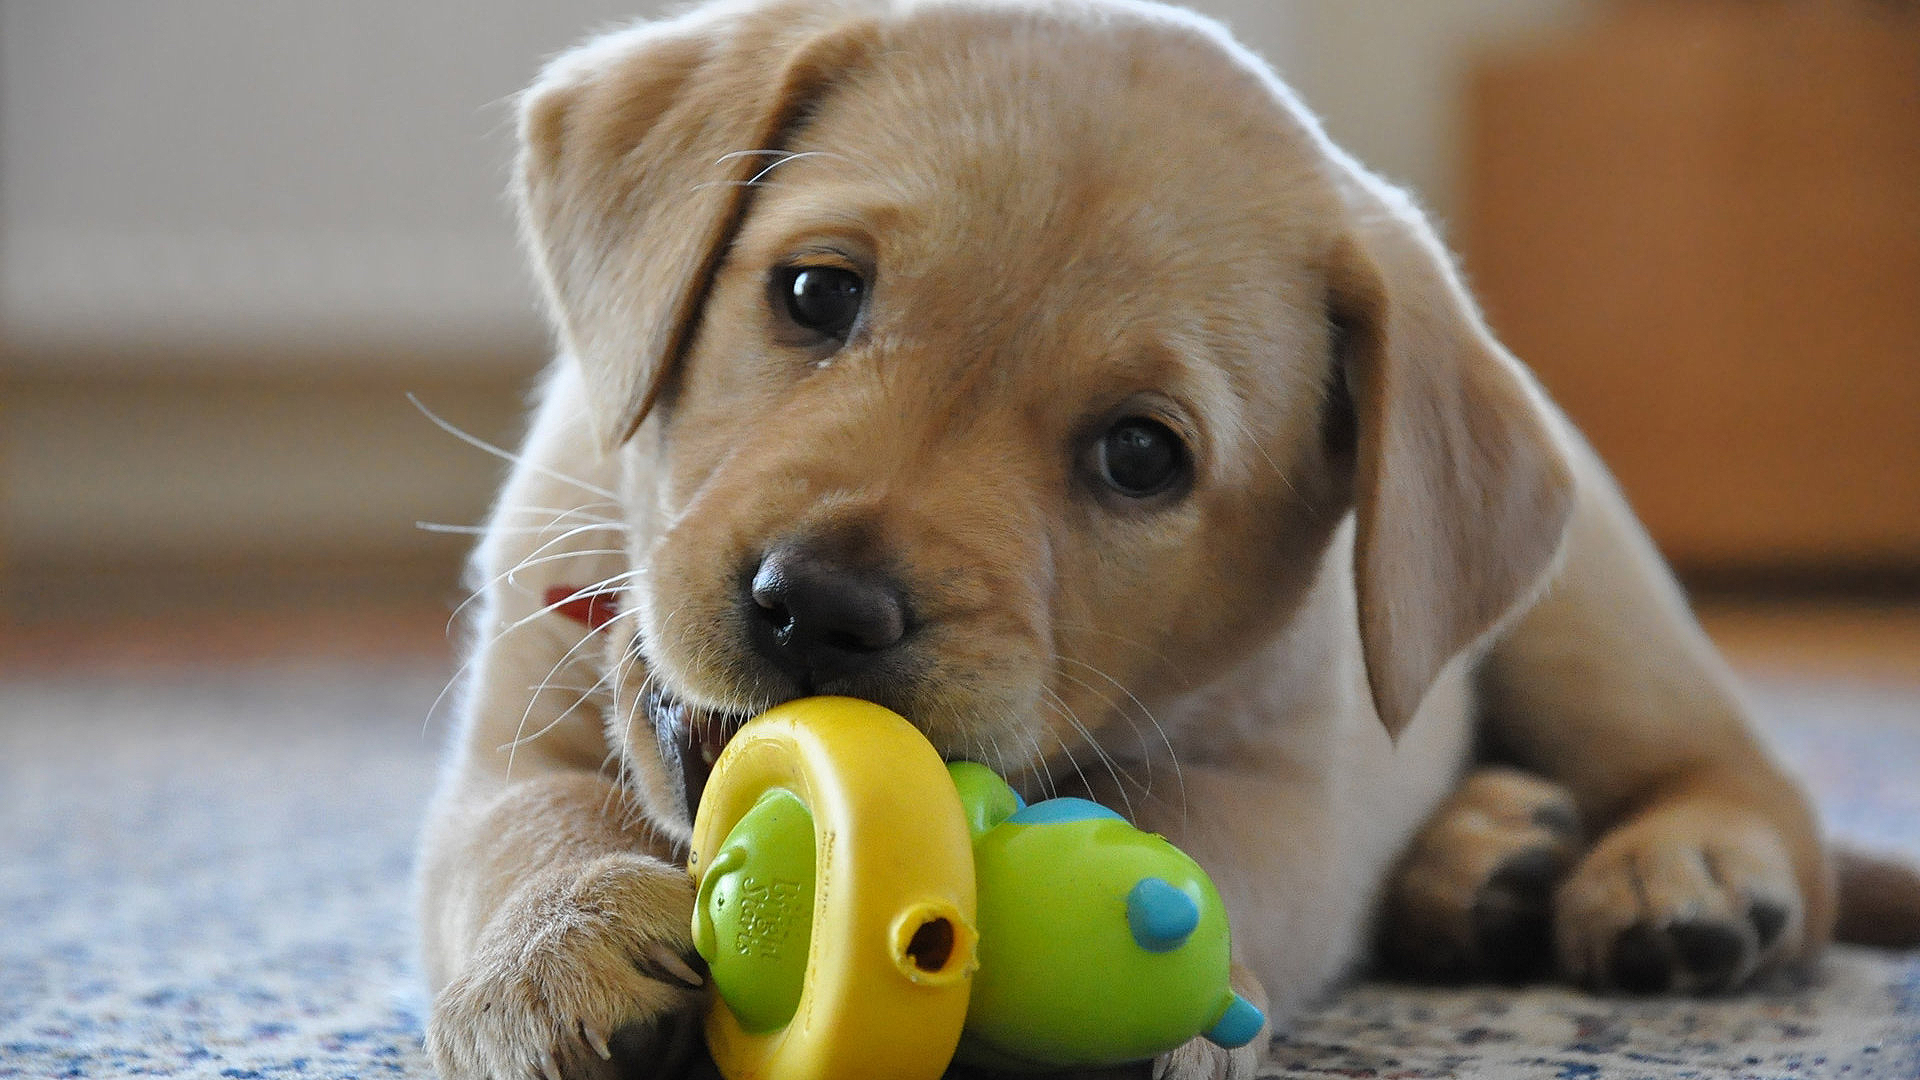 FileLabrador Retriever yellow puppyjpg   Wikipedia   m5xeu 1920x1080